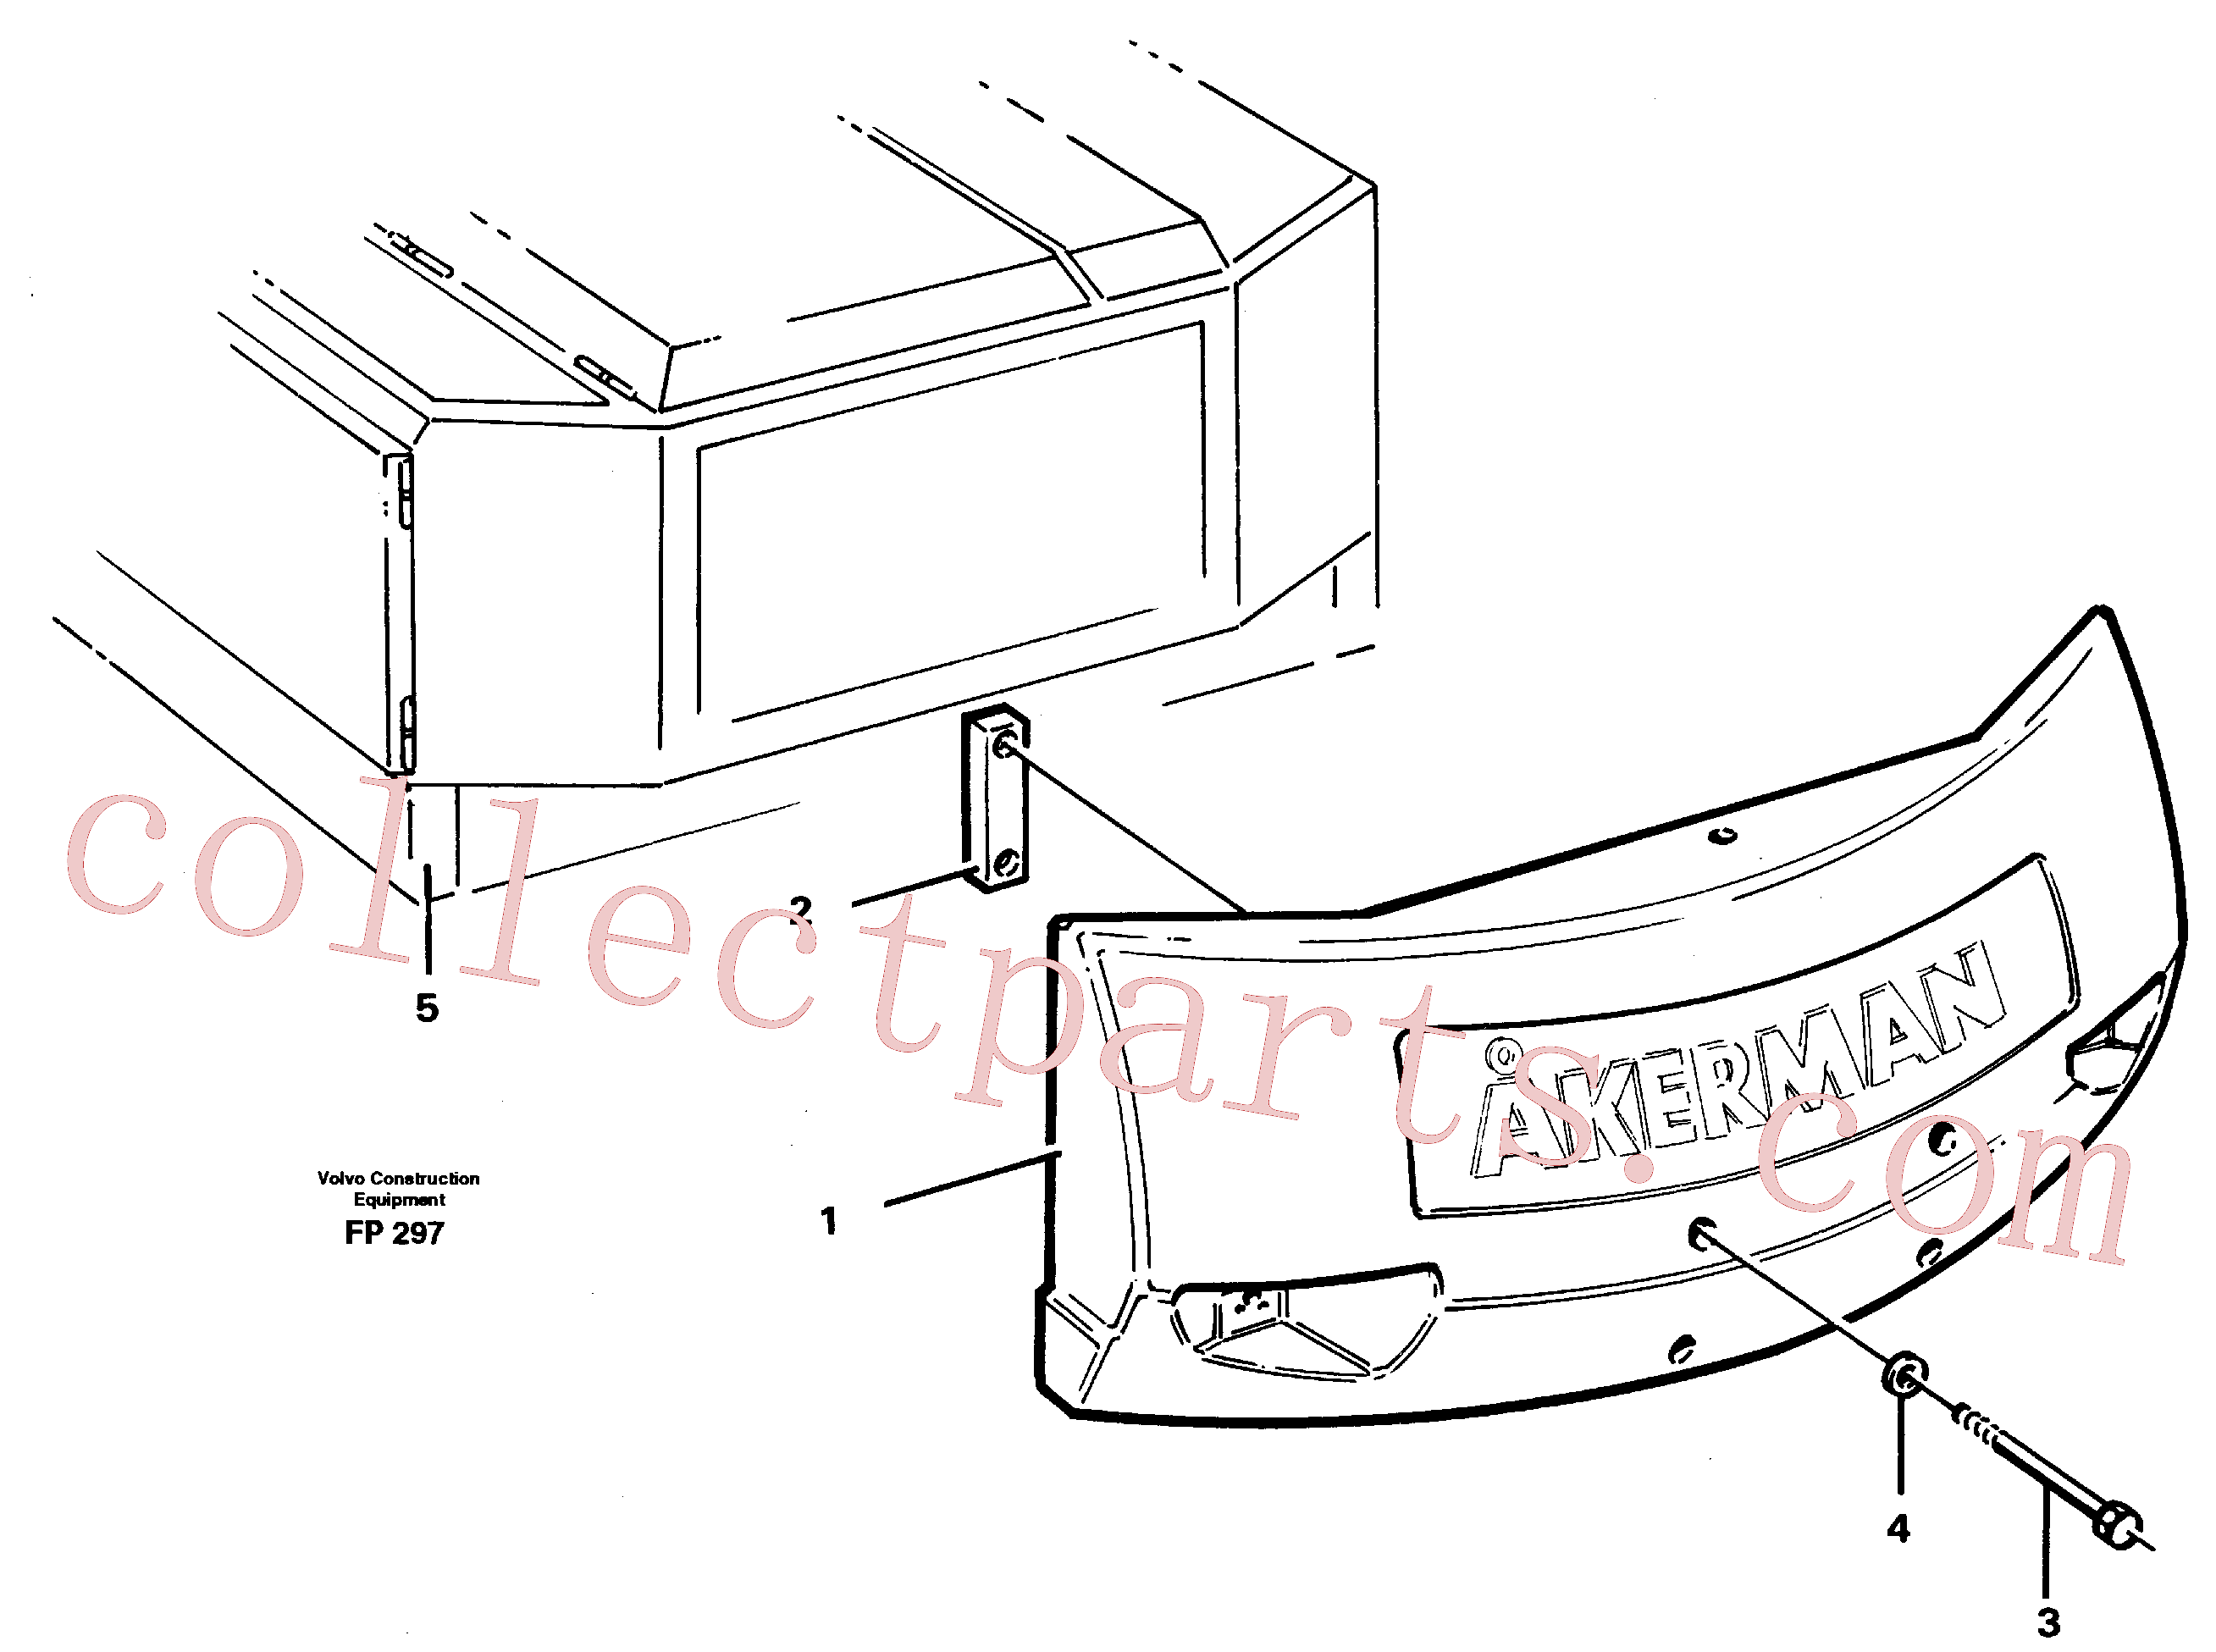 VOE13974302 for Volvo Counterweights(FP297 assembly)